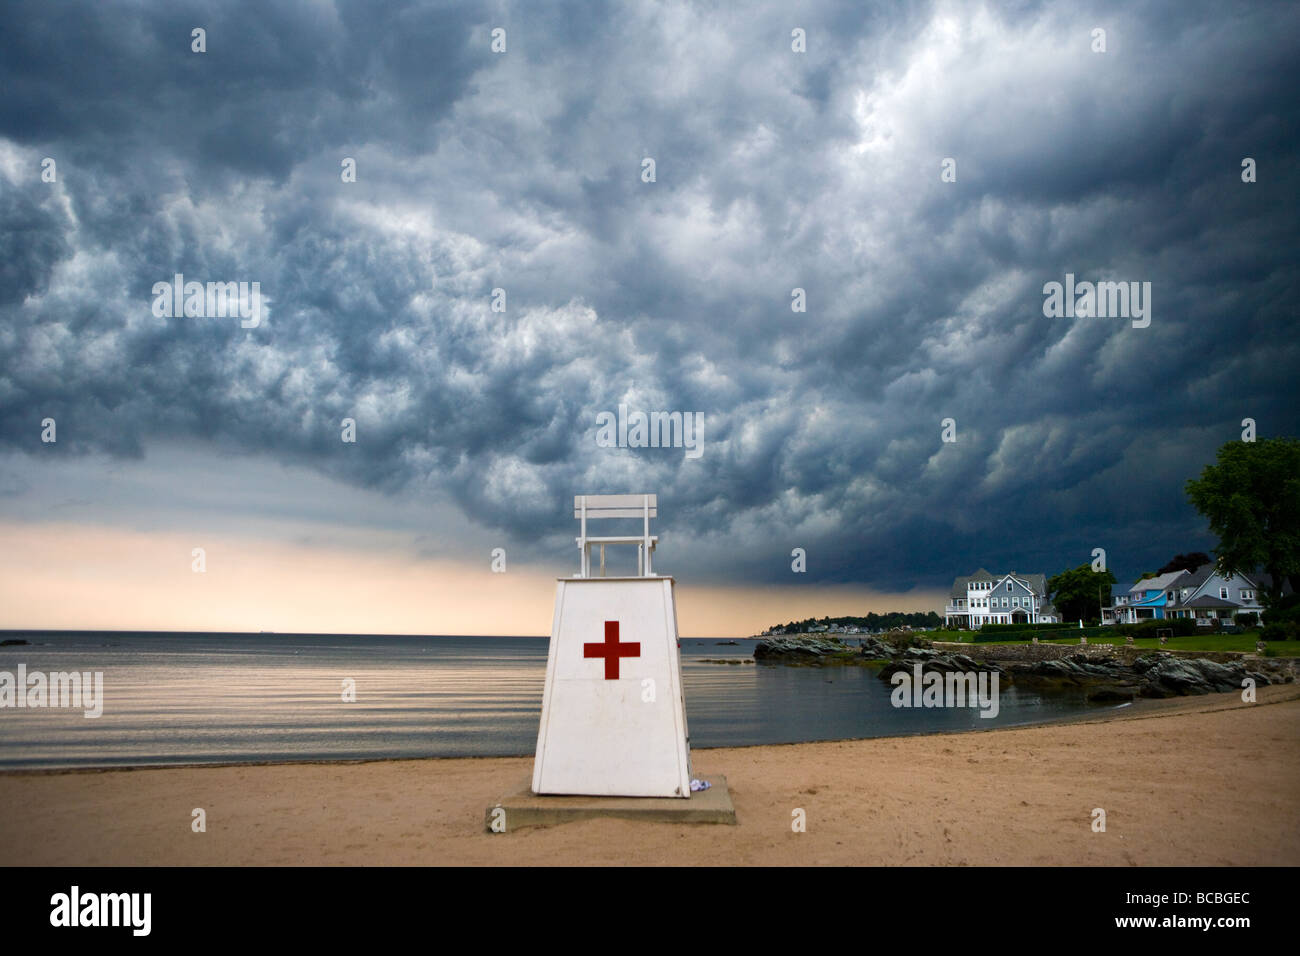 A Storm Front over Milford Connecticut USA - Stock Image